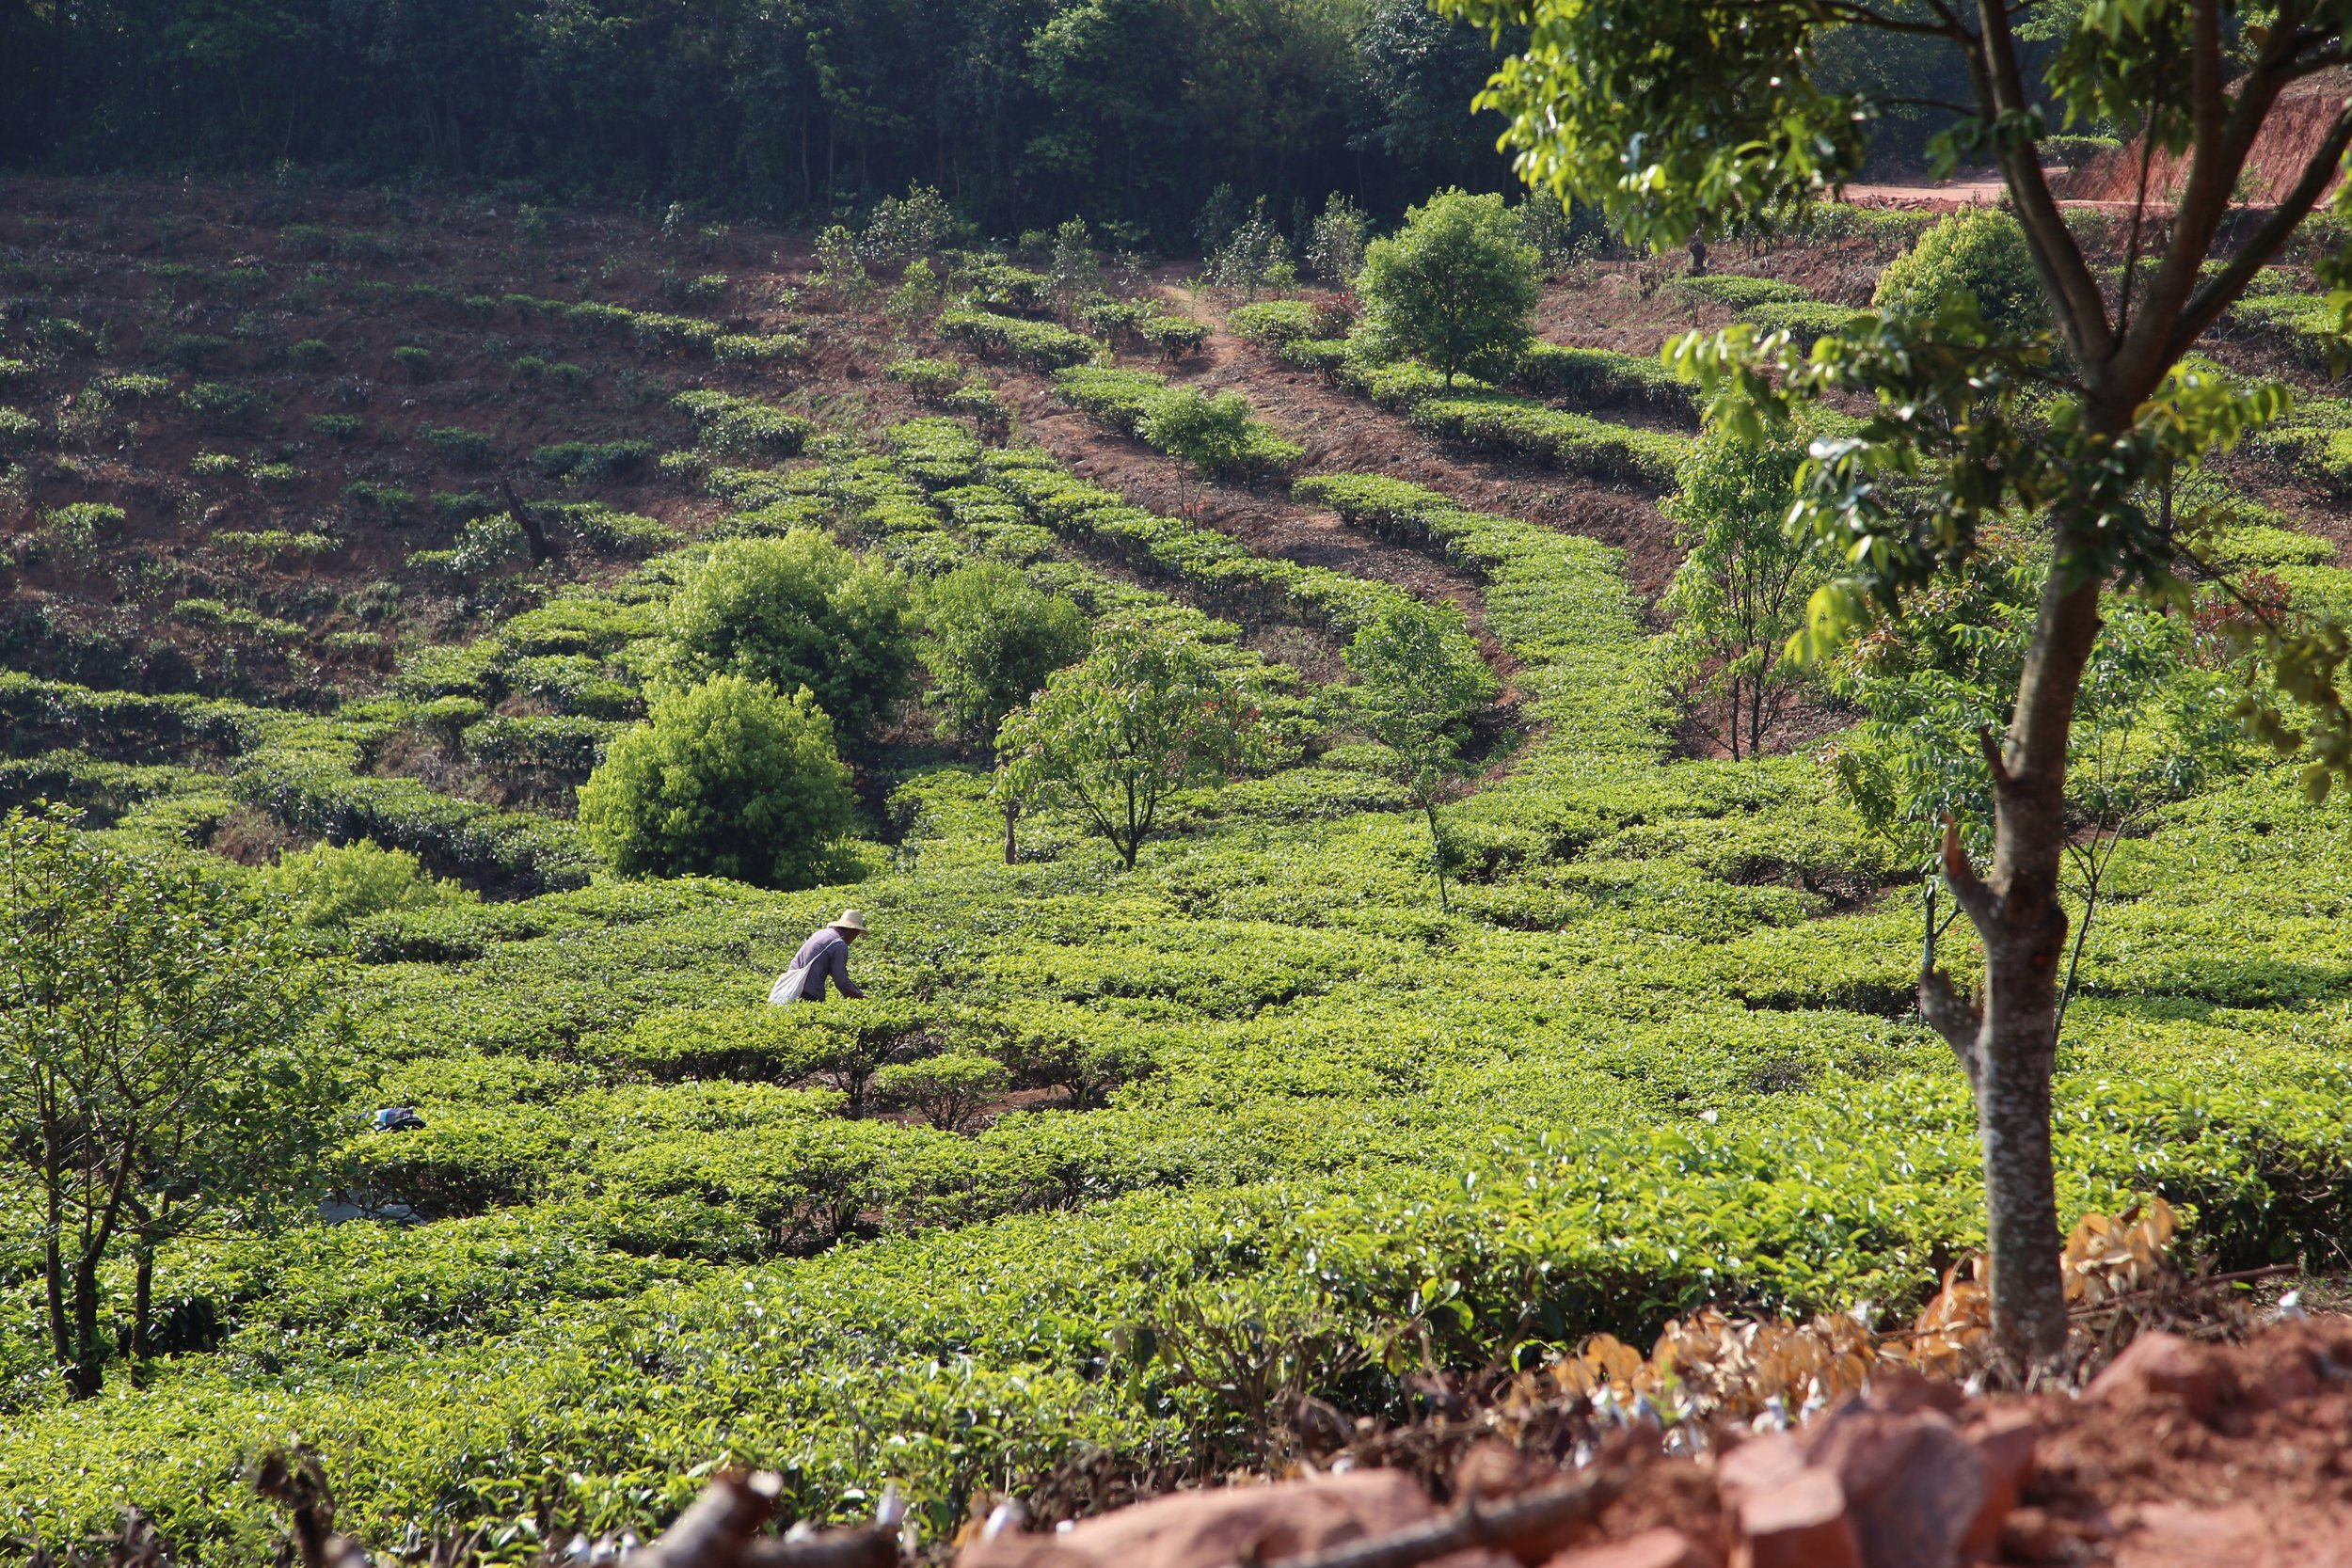 We partner with small scale tea gardeners who focus on quality over quantity. - Small scale tea farmers cannot compete with commercial tea gardens who owns industrialized harvesting tools and employs thousands of workers. Hence, our friend-farmers focus on quality and integrity of their tea production.